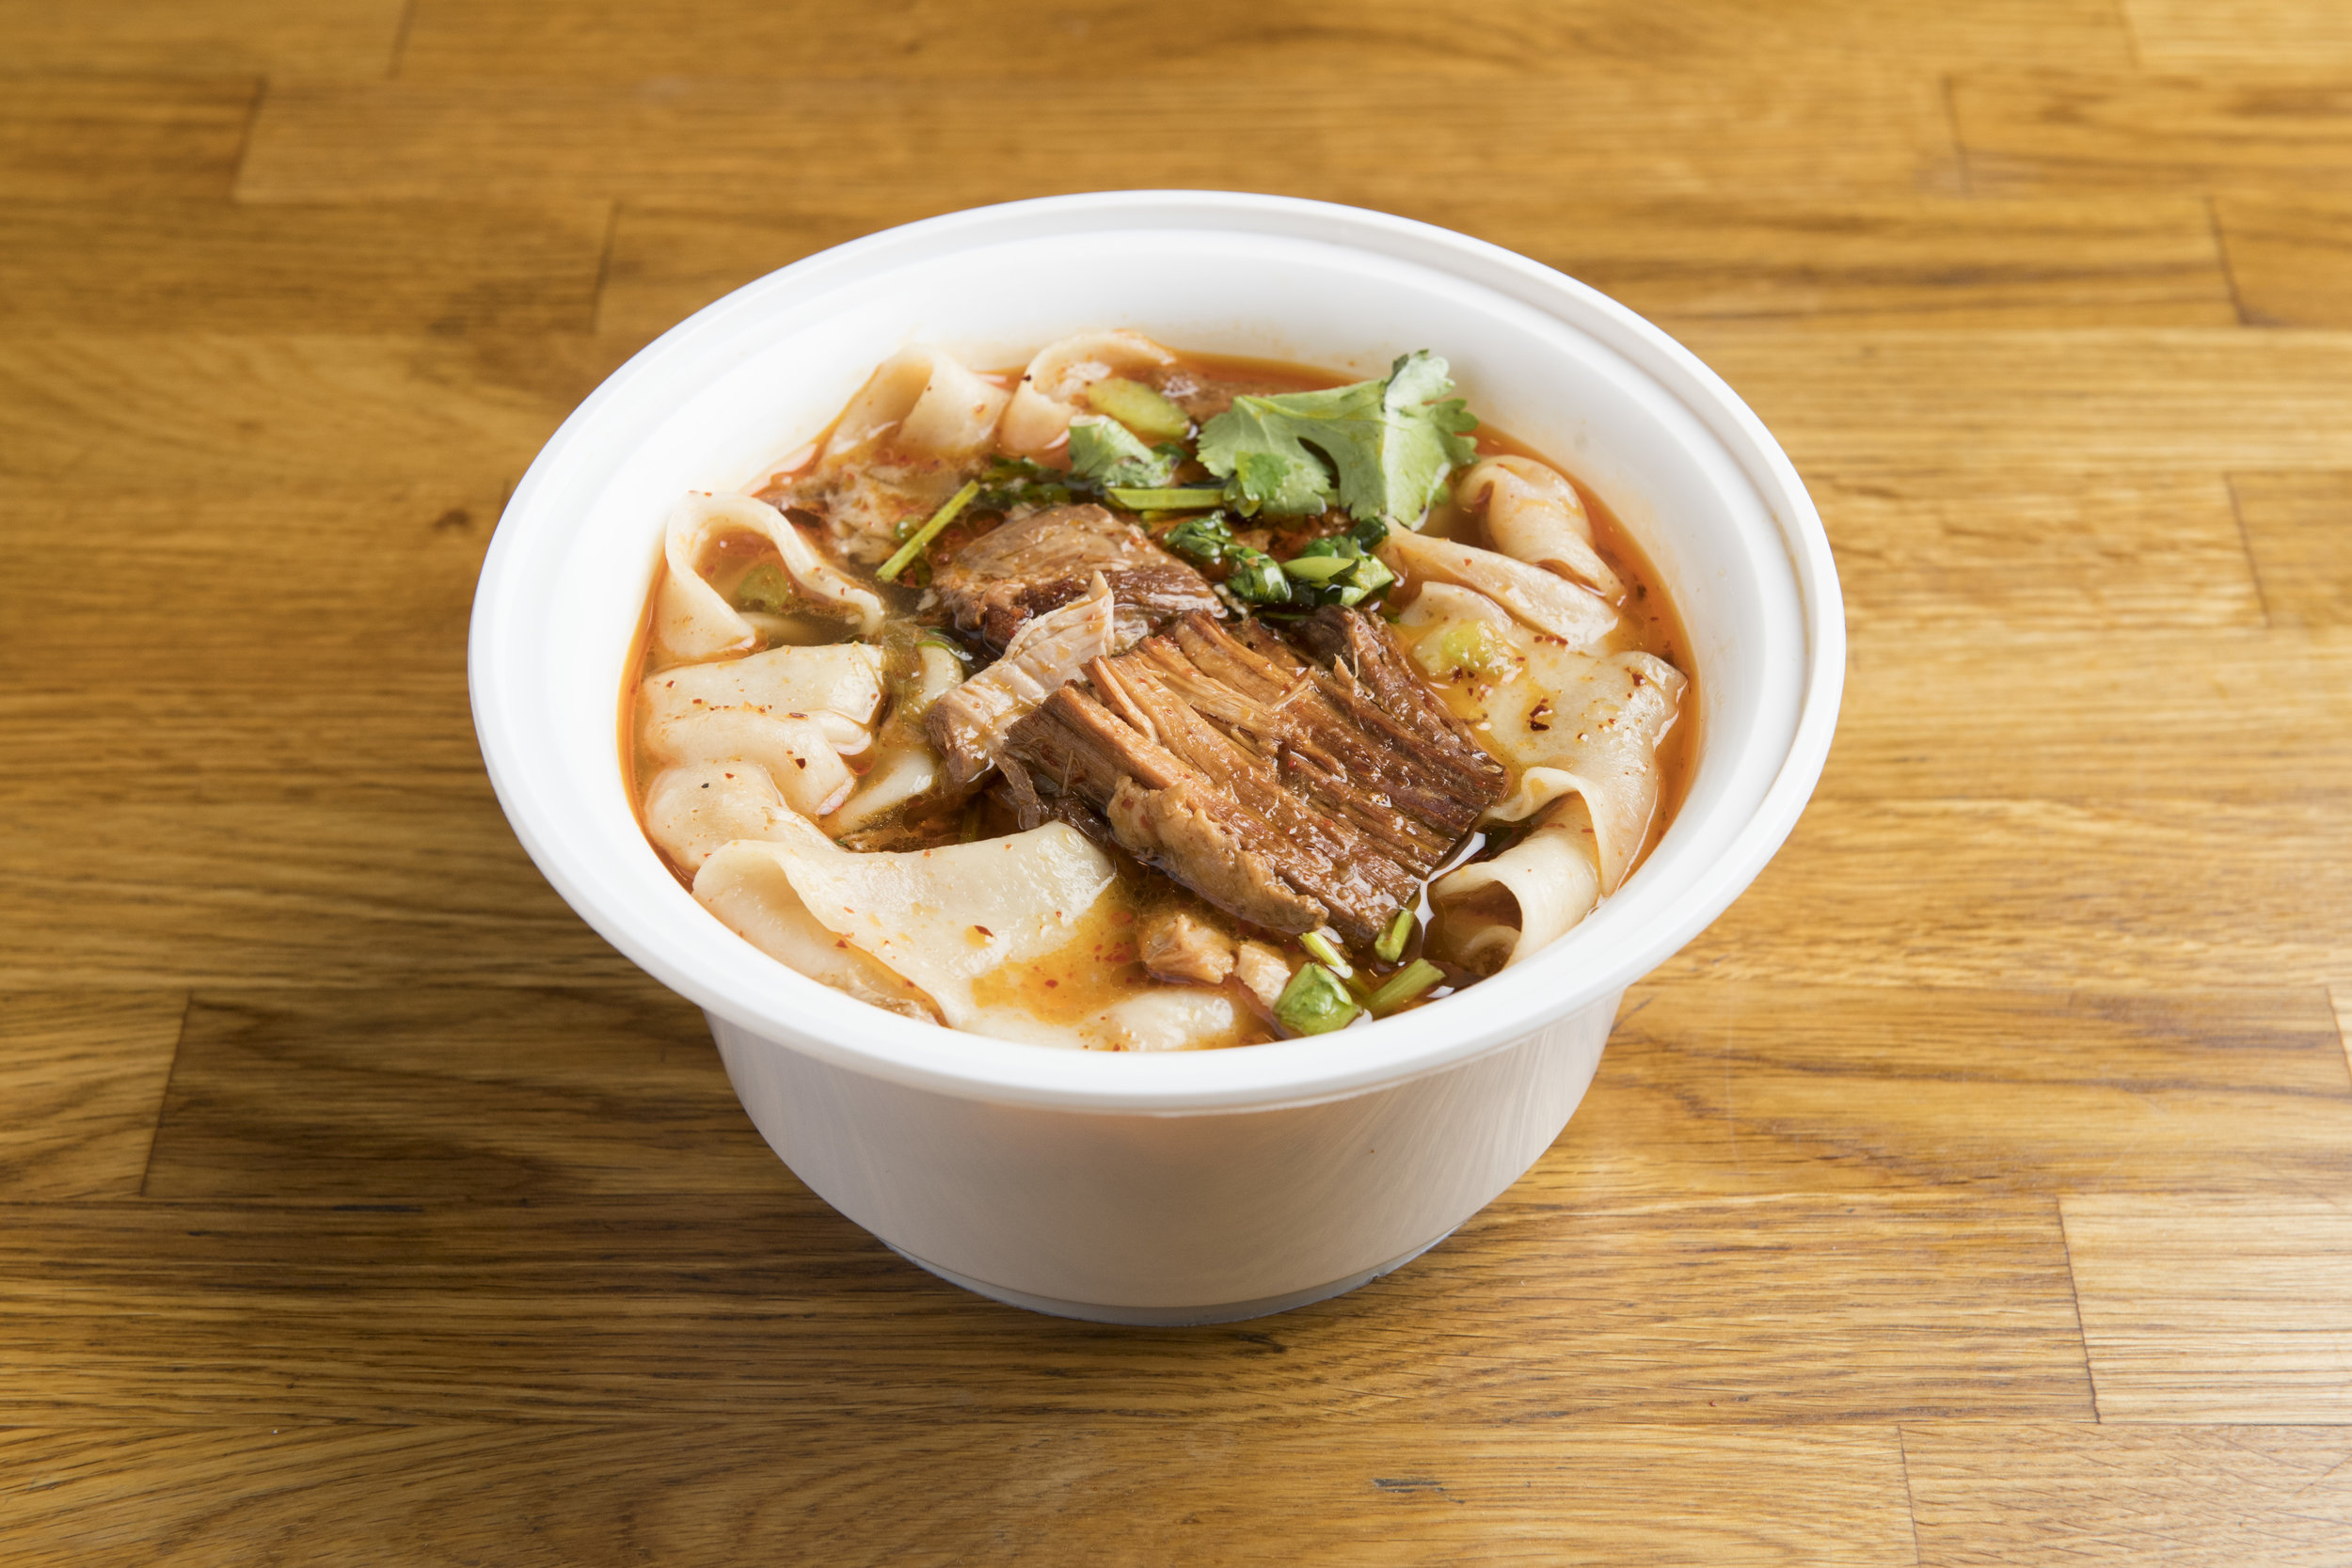 [NS4] Stewed Pork Hand-Ripped Noodles in Soup   Our biangbiang wide, hand-ripped noodles, topped with pulled pieces of stewed lean pork belly meat, in a noodle broth containing its own soy-sauce based stew.